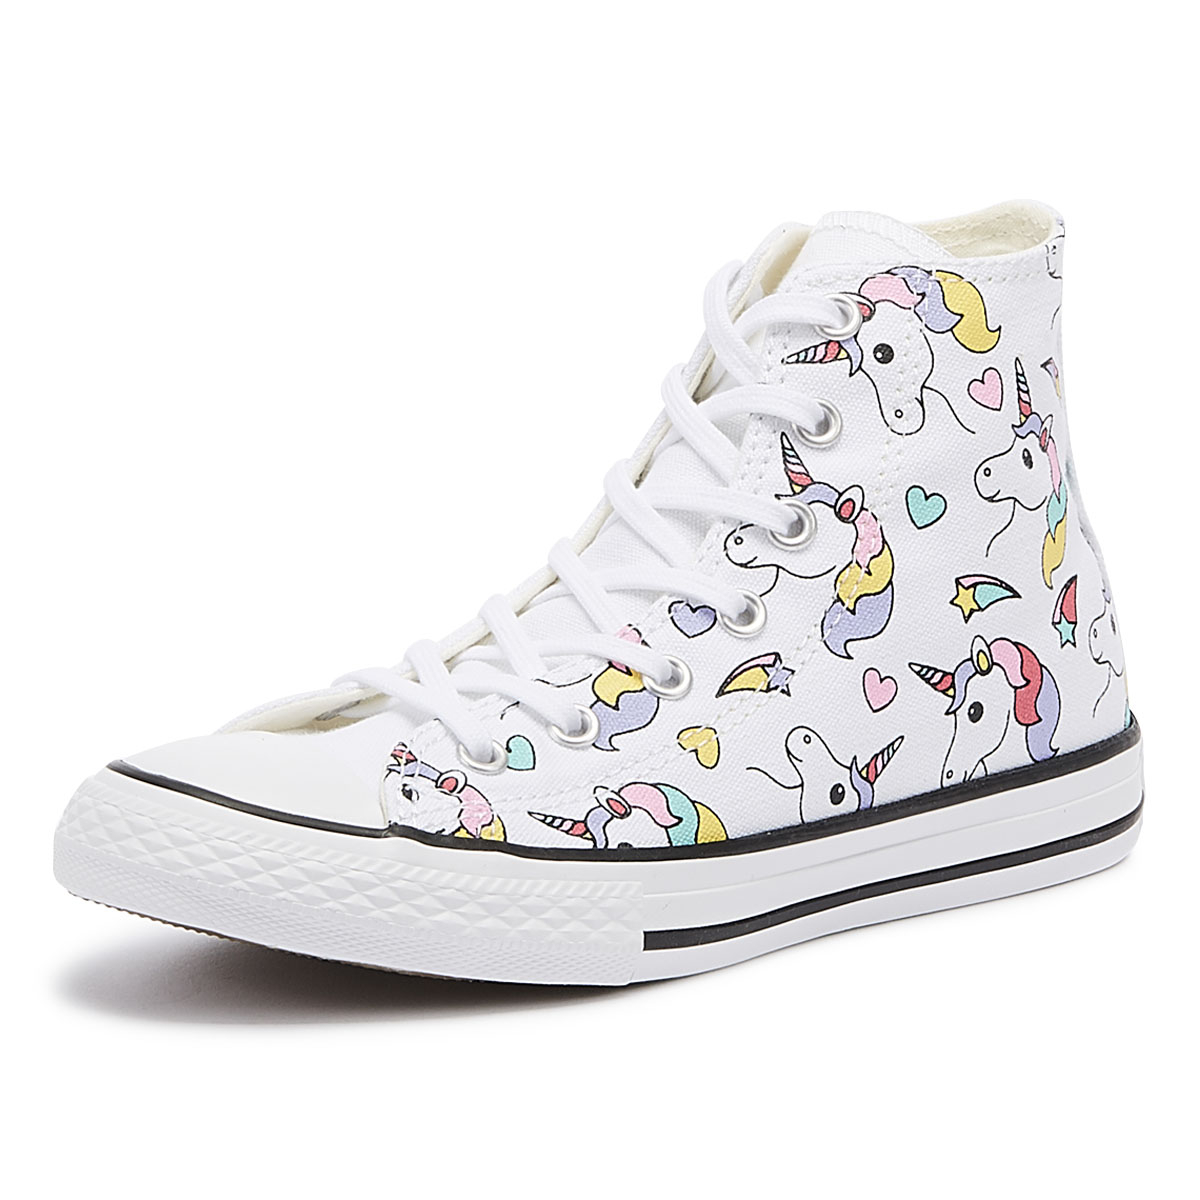 97737e2ebee7 Details about Converse Chuck Taylor All Star Junior Unicorn   Rainbow Hi  Trainers Kids Shoes